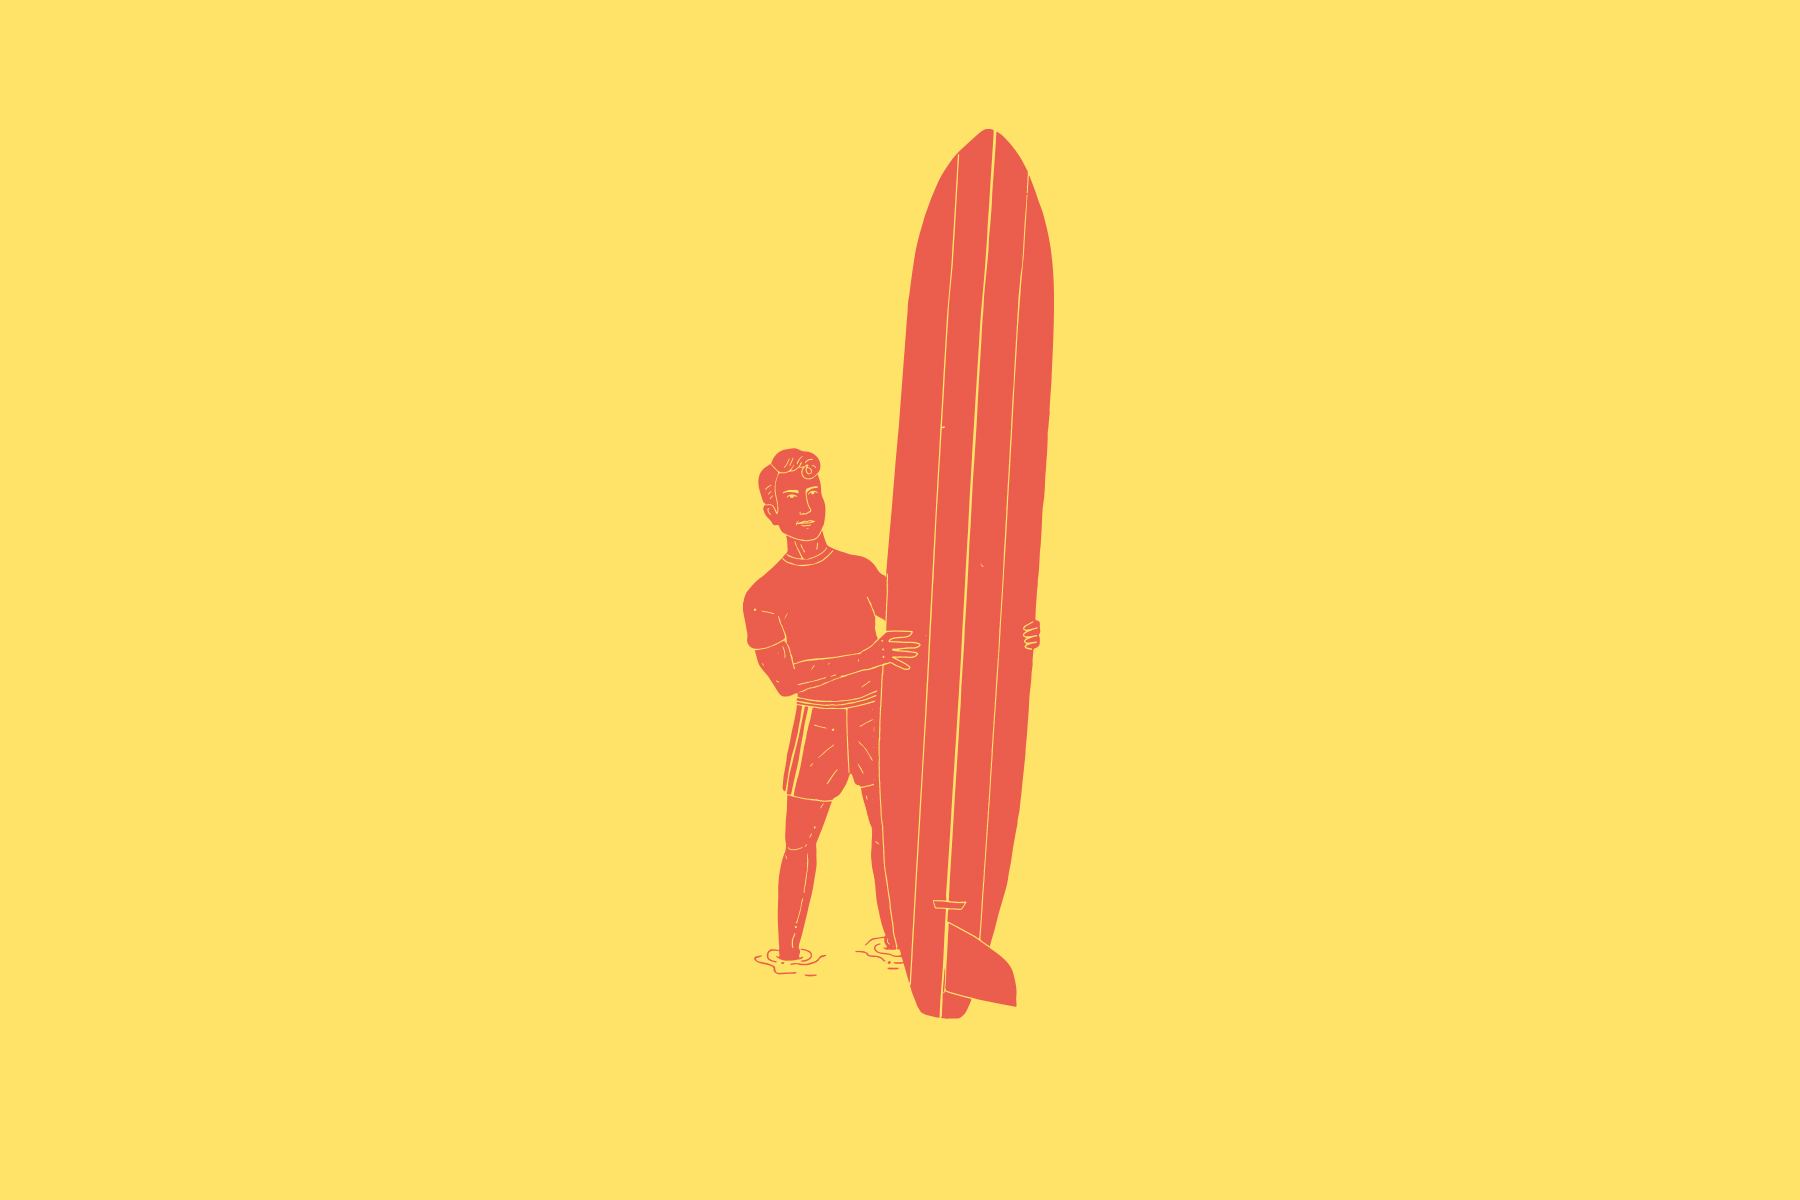 illustration of a surfer and pig style longboard from the 1950s by clara jonas